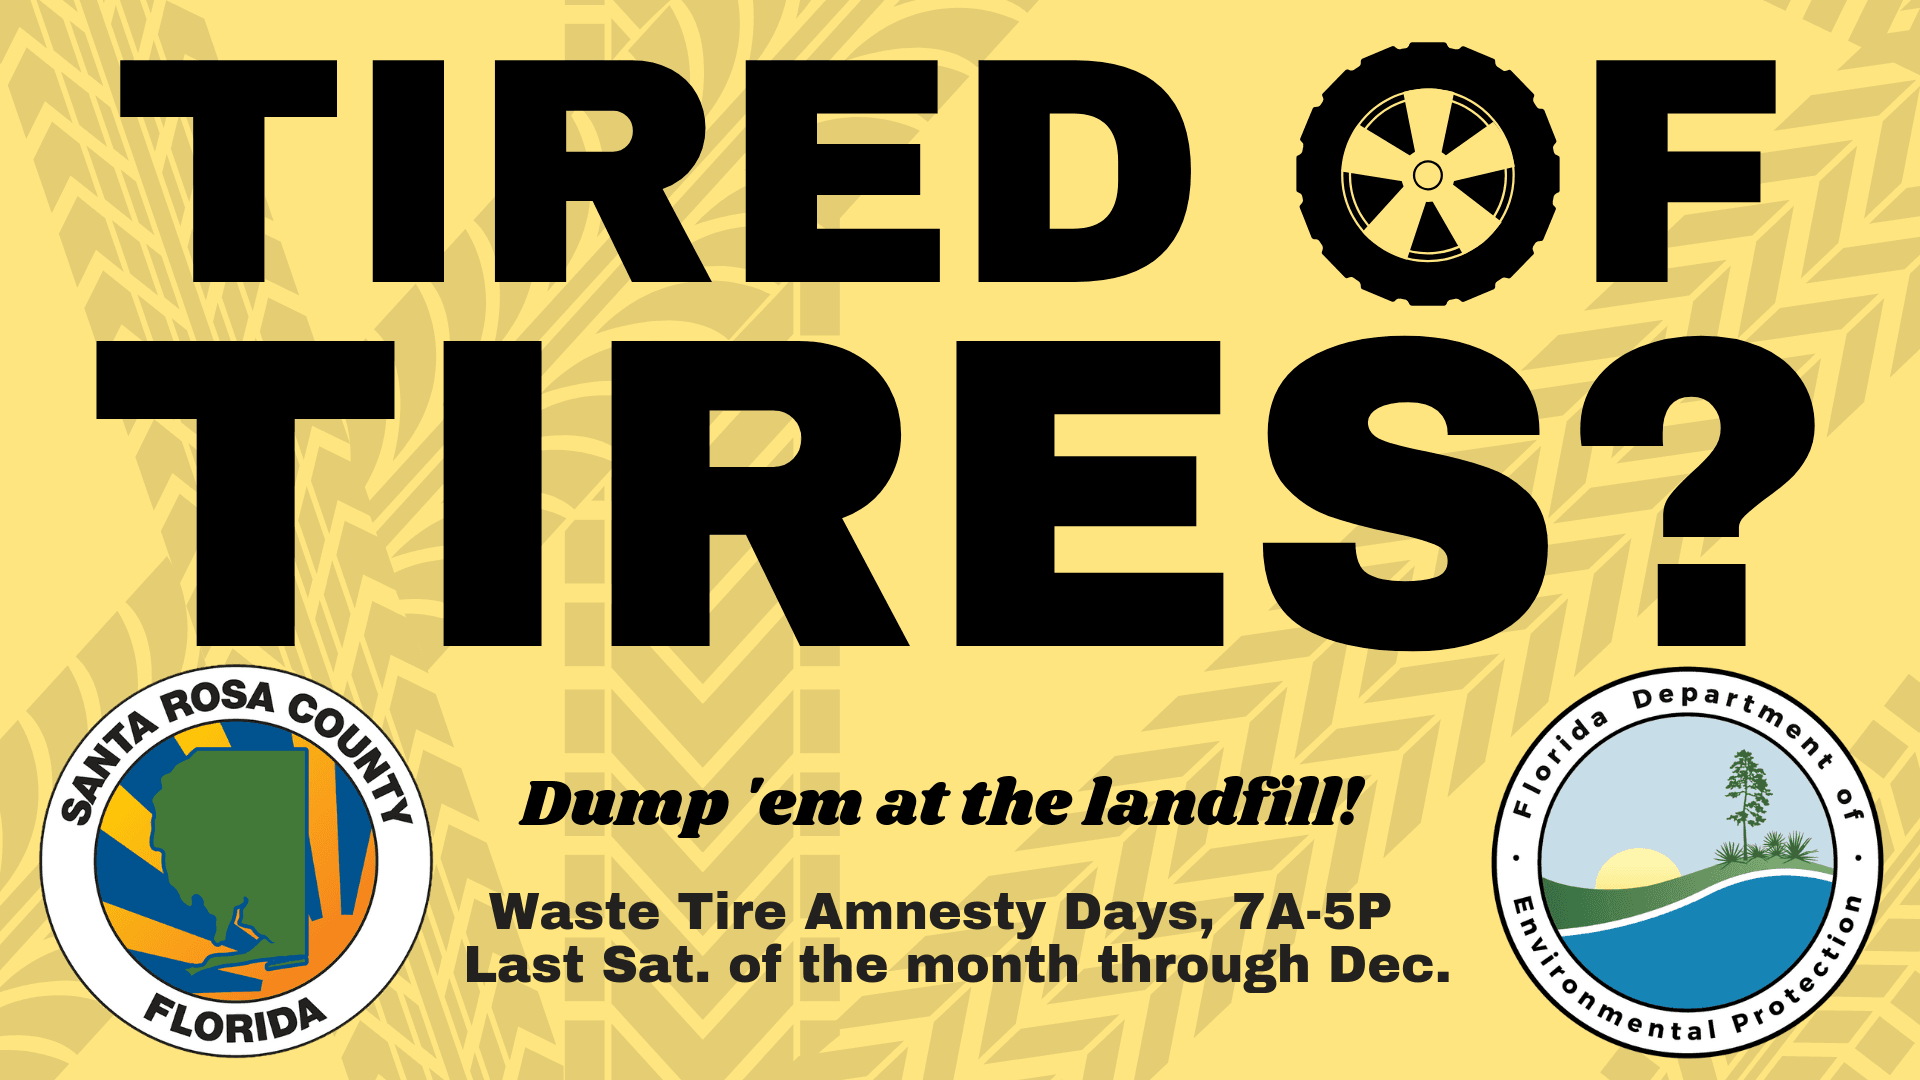 Drop your tires at the landfill the last Saturday of each month through December.